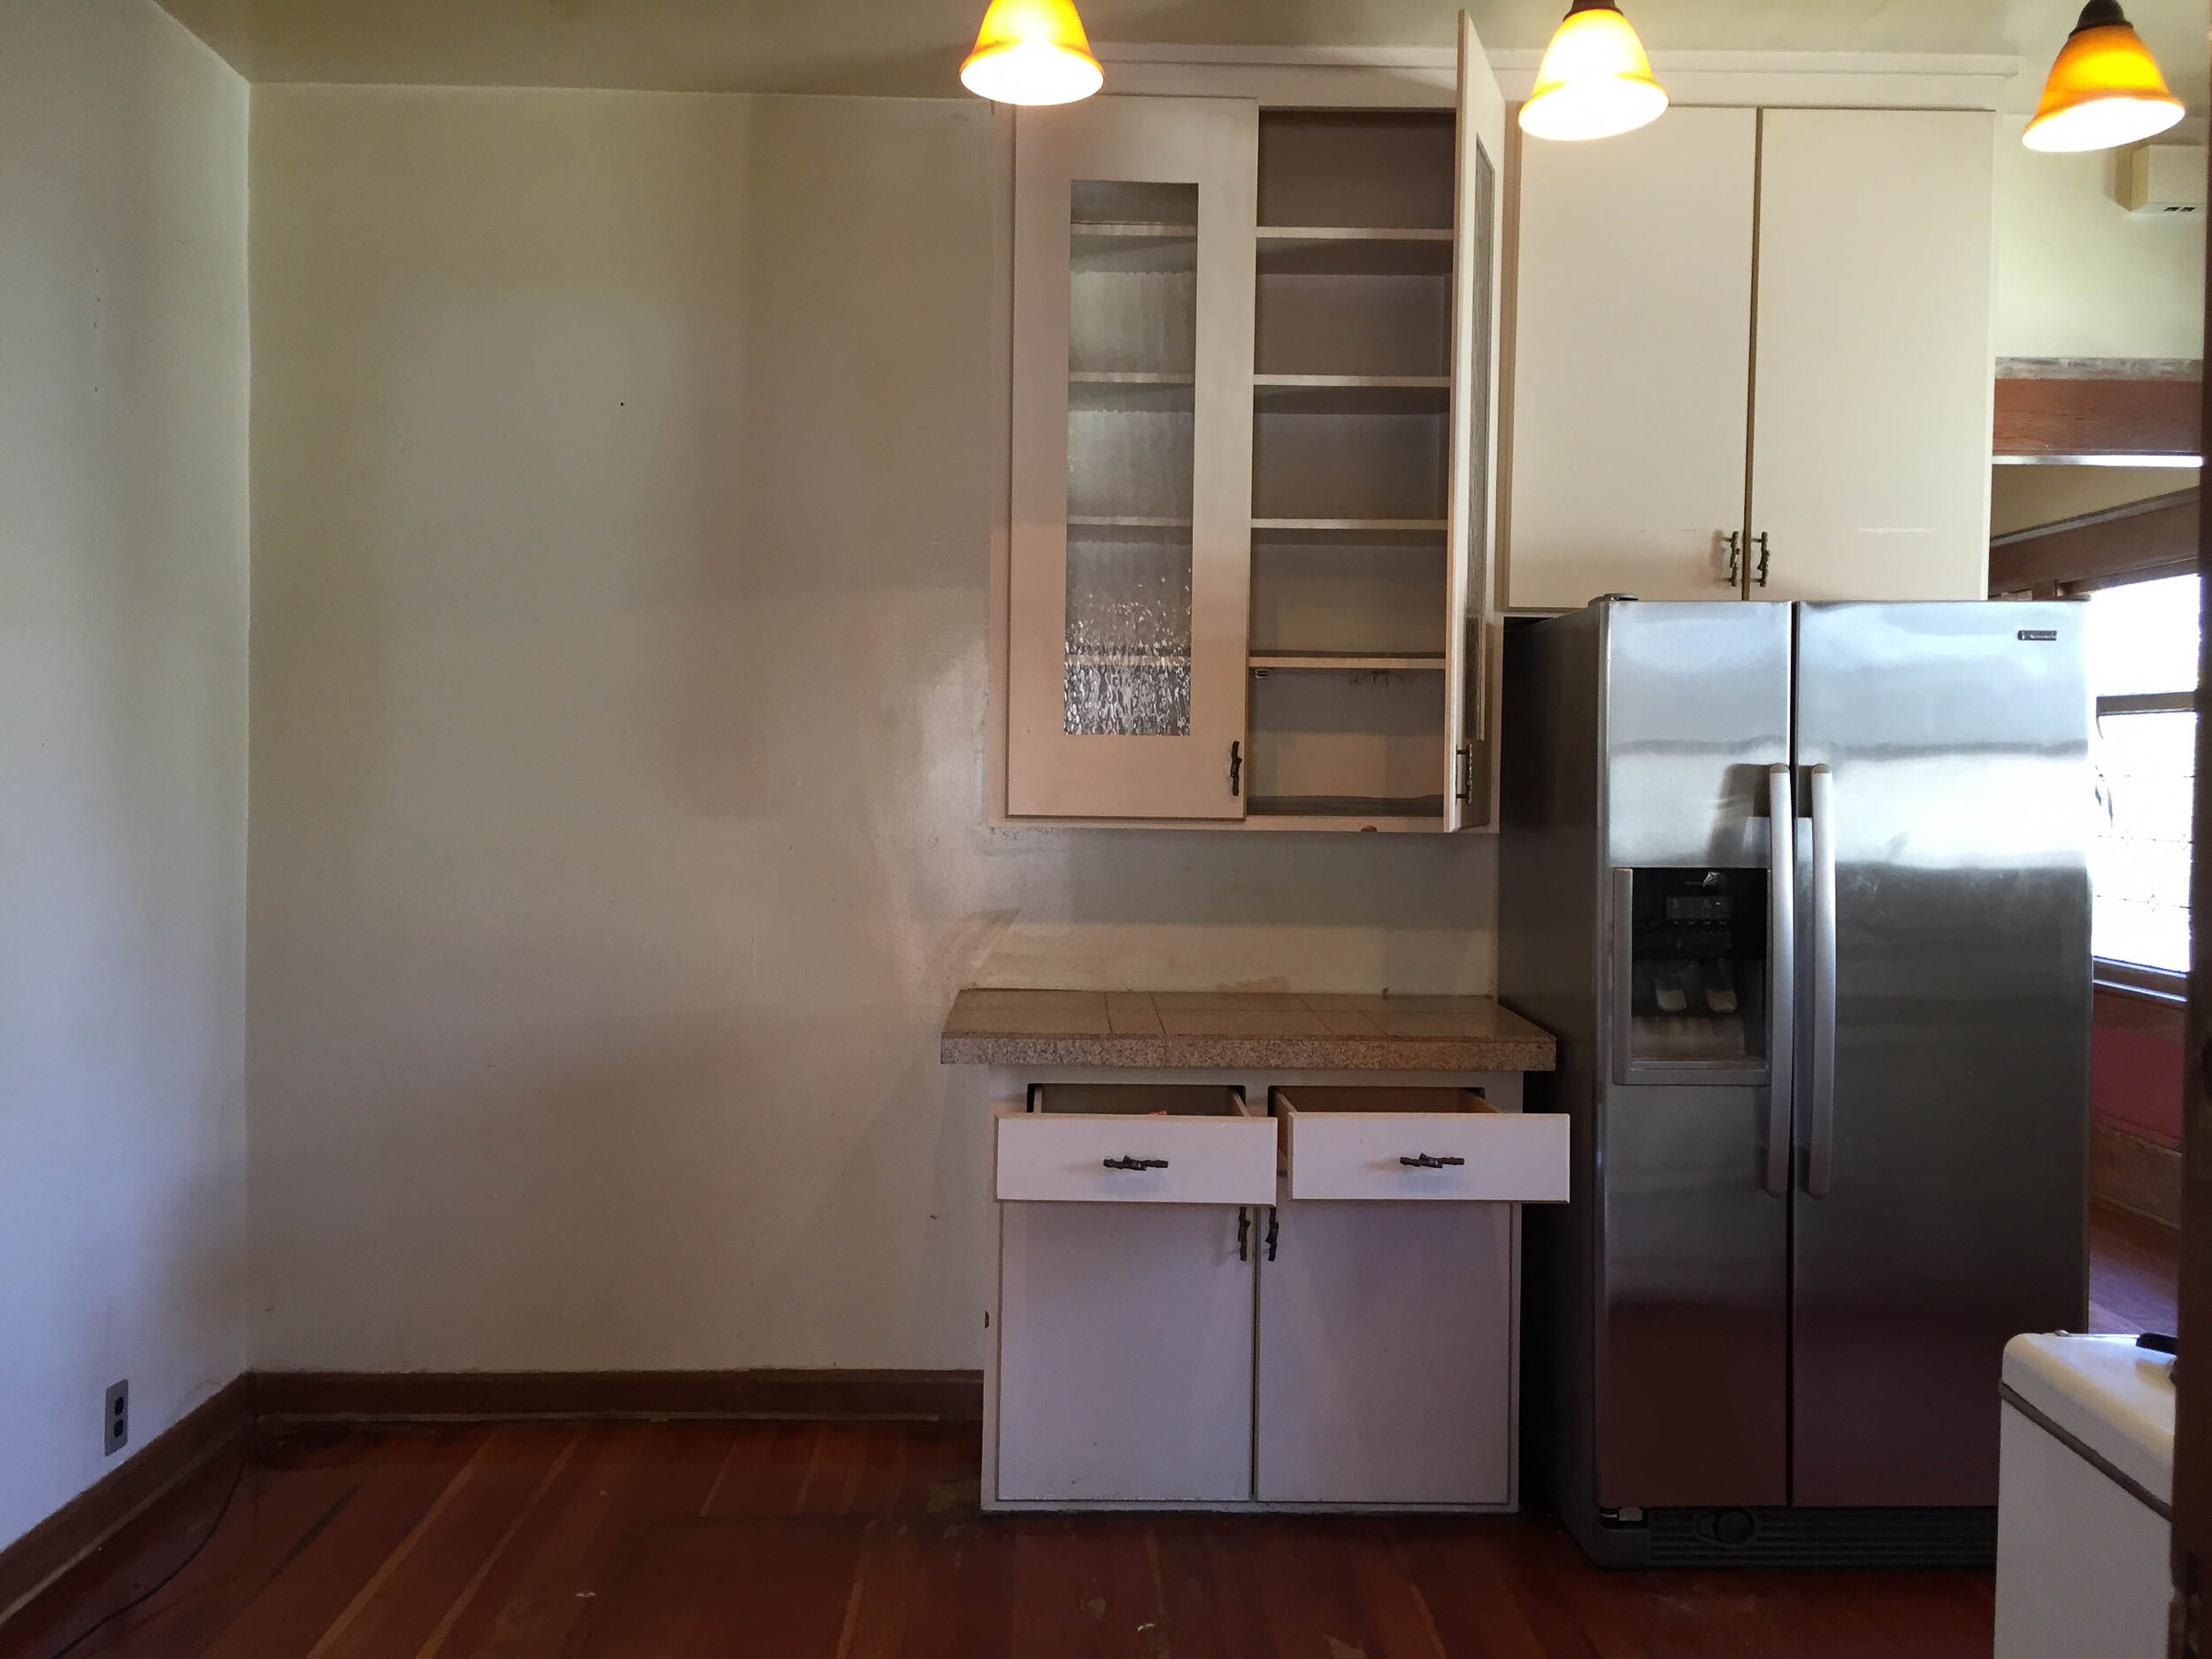 The Gold Hive $600 Kitchen Makeover Craftsman Bungalow Retro Style-4930.jpg